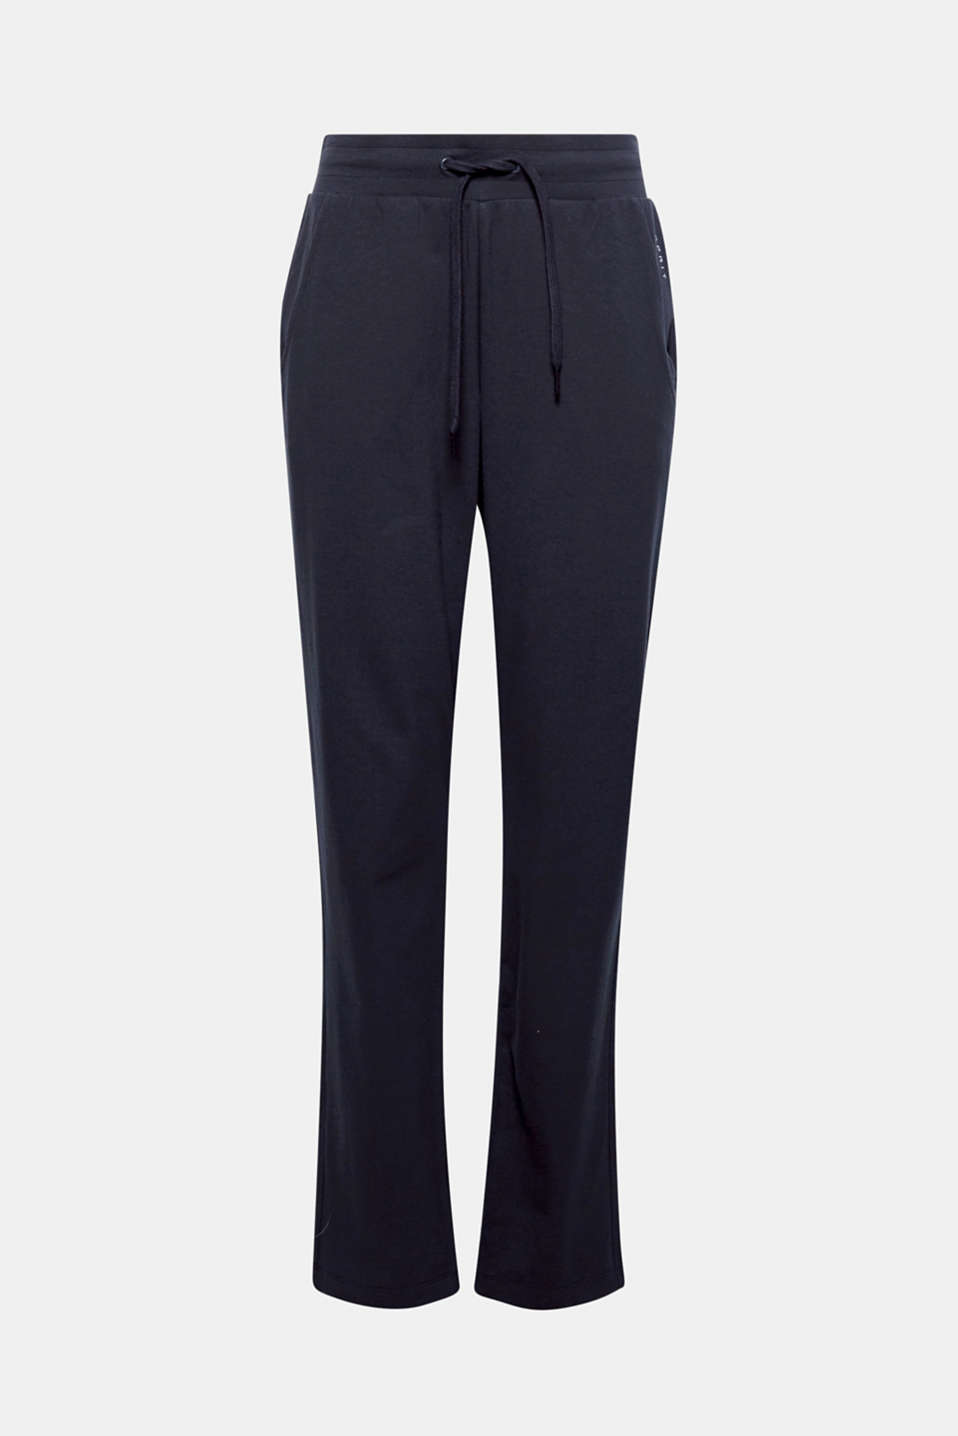 For sport or chilling out: these loose, stretch jersey tracksuit bottoms always feel mega comfy!